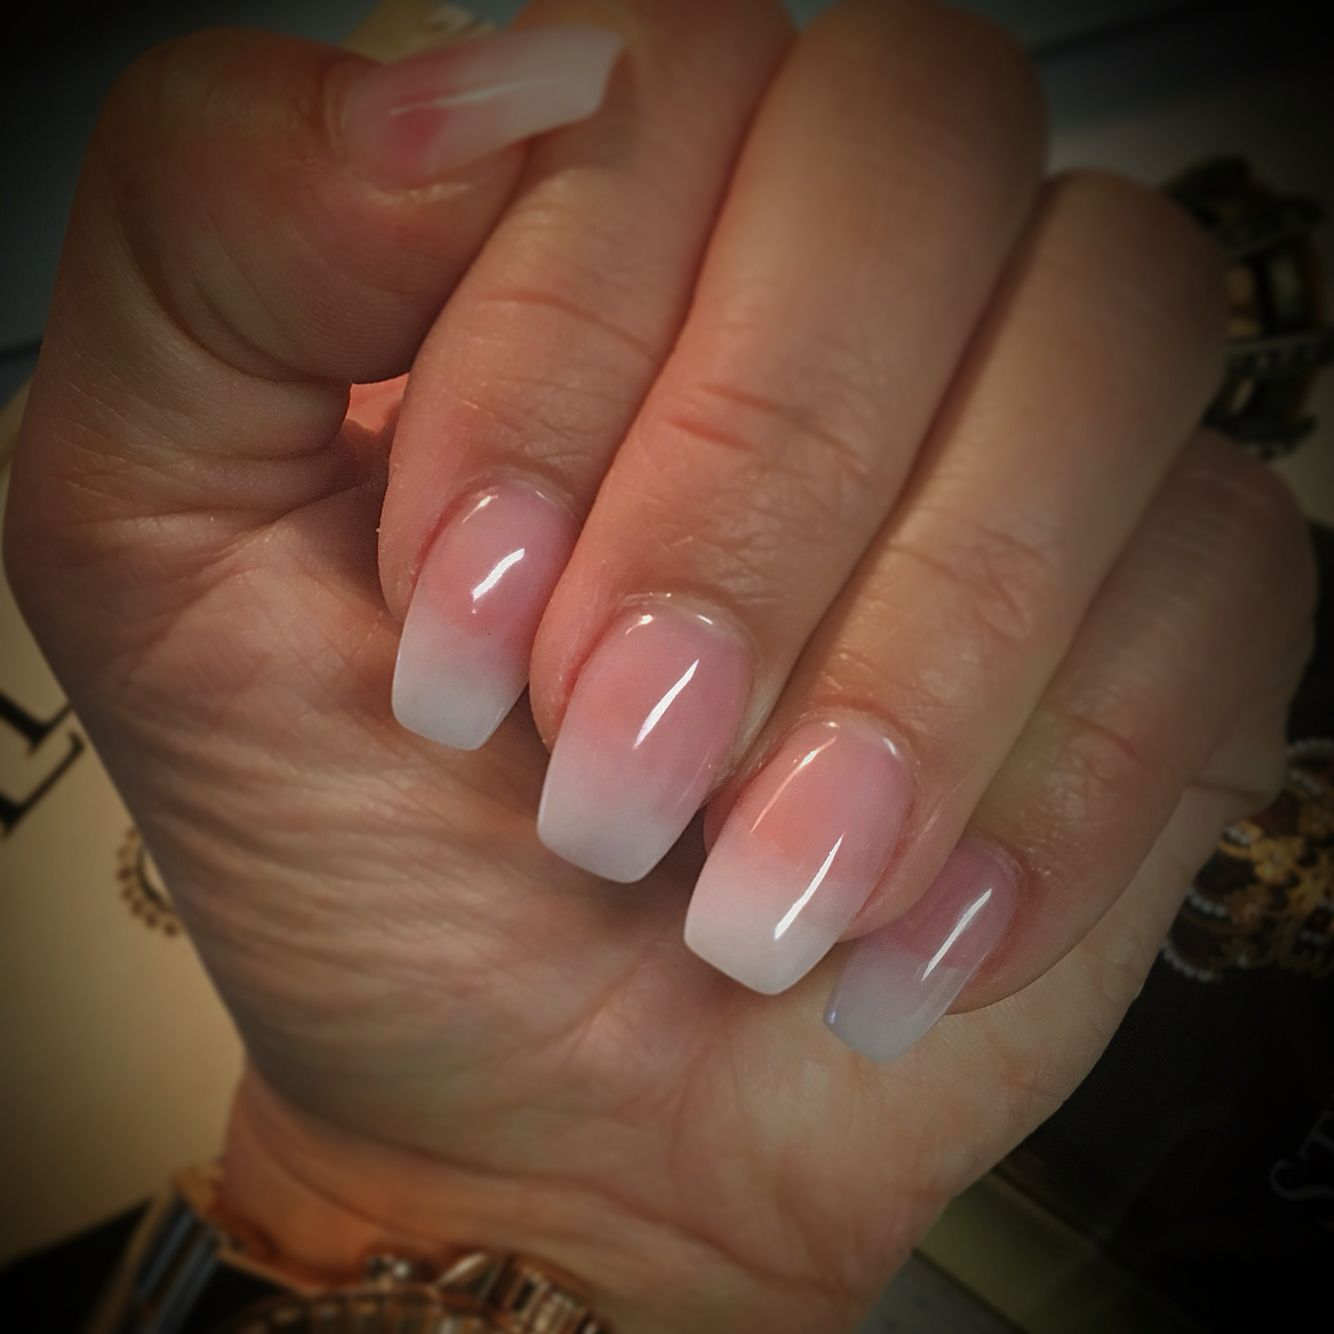 Ombre French Semi Coffin Nails No Polish All Acrylic W Gel Topcoat Coffin Nails Designs Nail Designs Bling Glitter Gel Nails